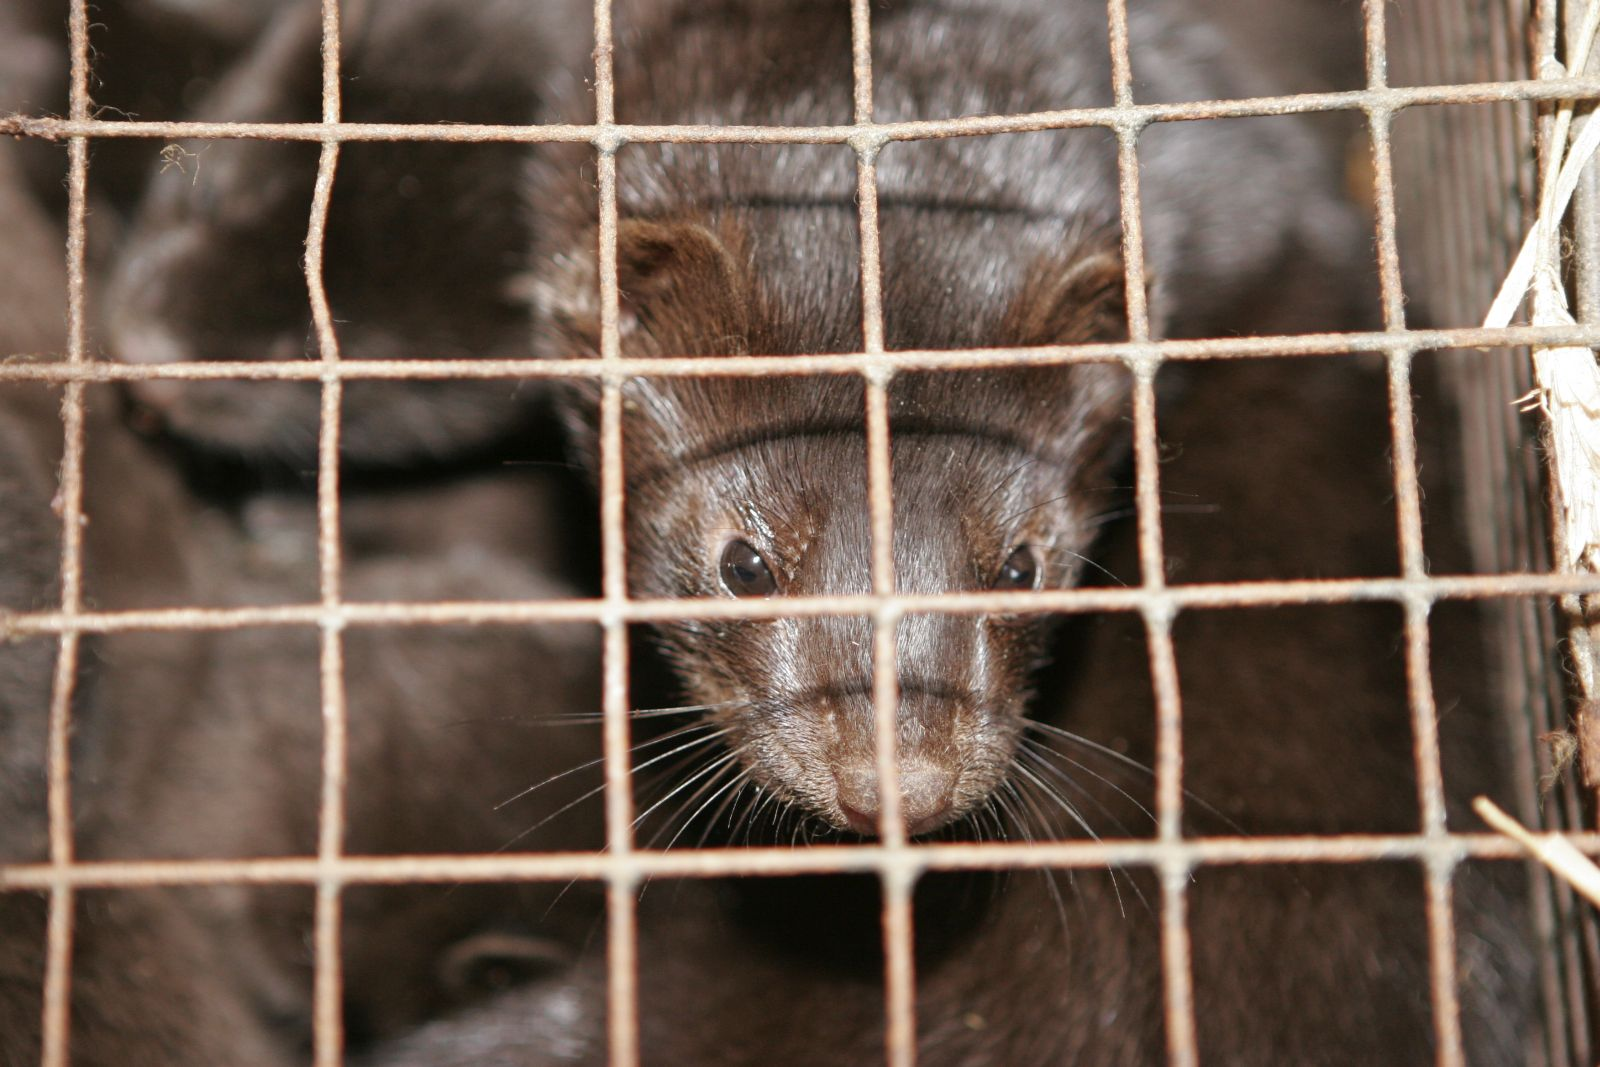 Germany | 2005 06 11 | Young black minks in a cage at a fur farm.